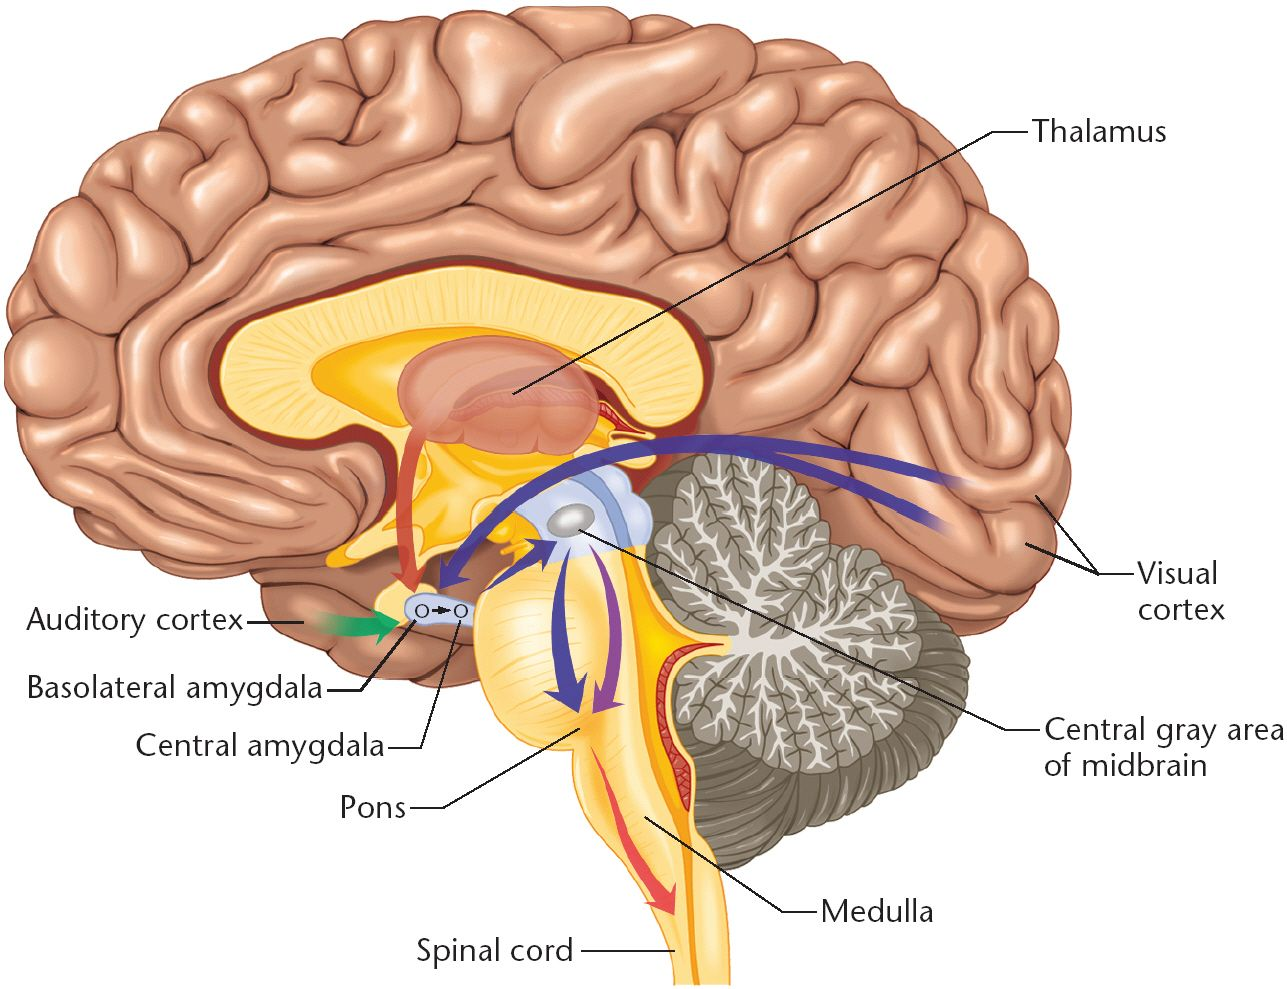 All Parts Of Inside Brain Unlabeled Diagram Brain Diagram Labeled